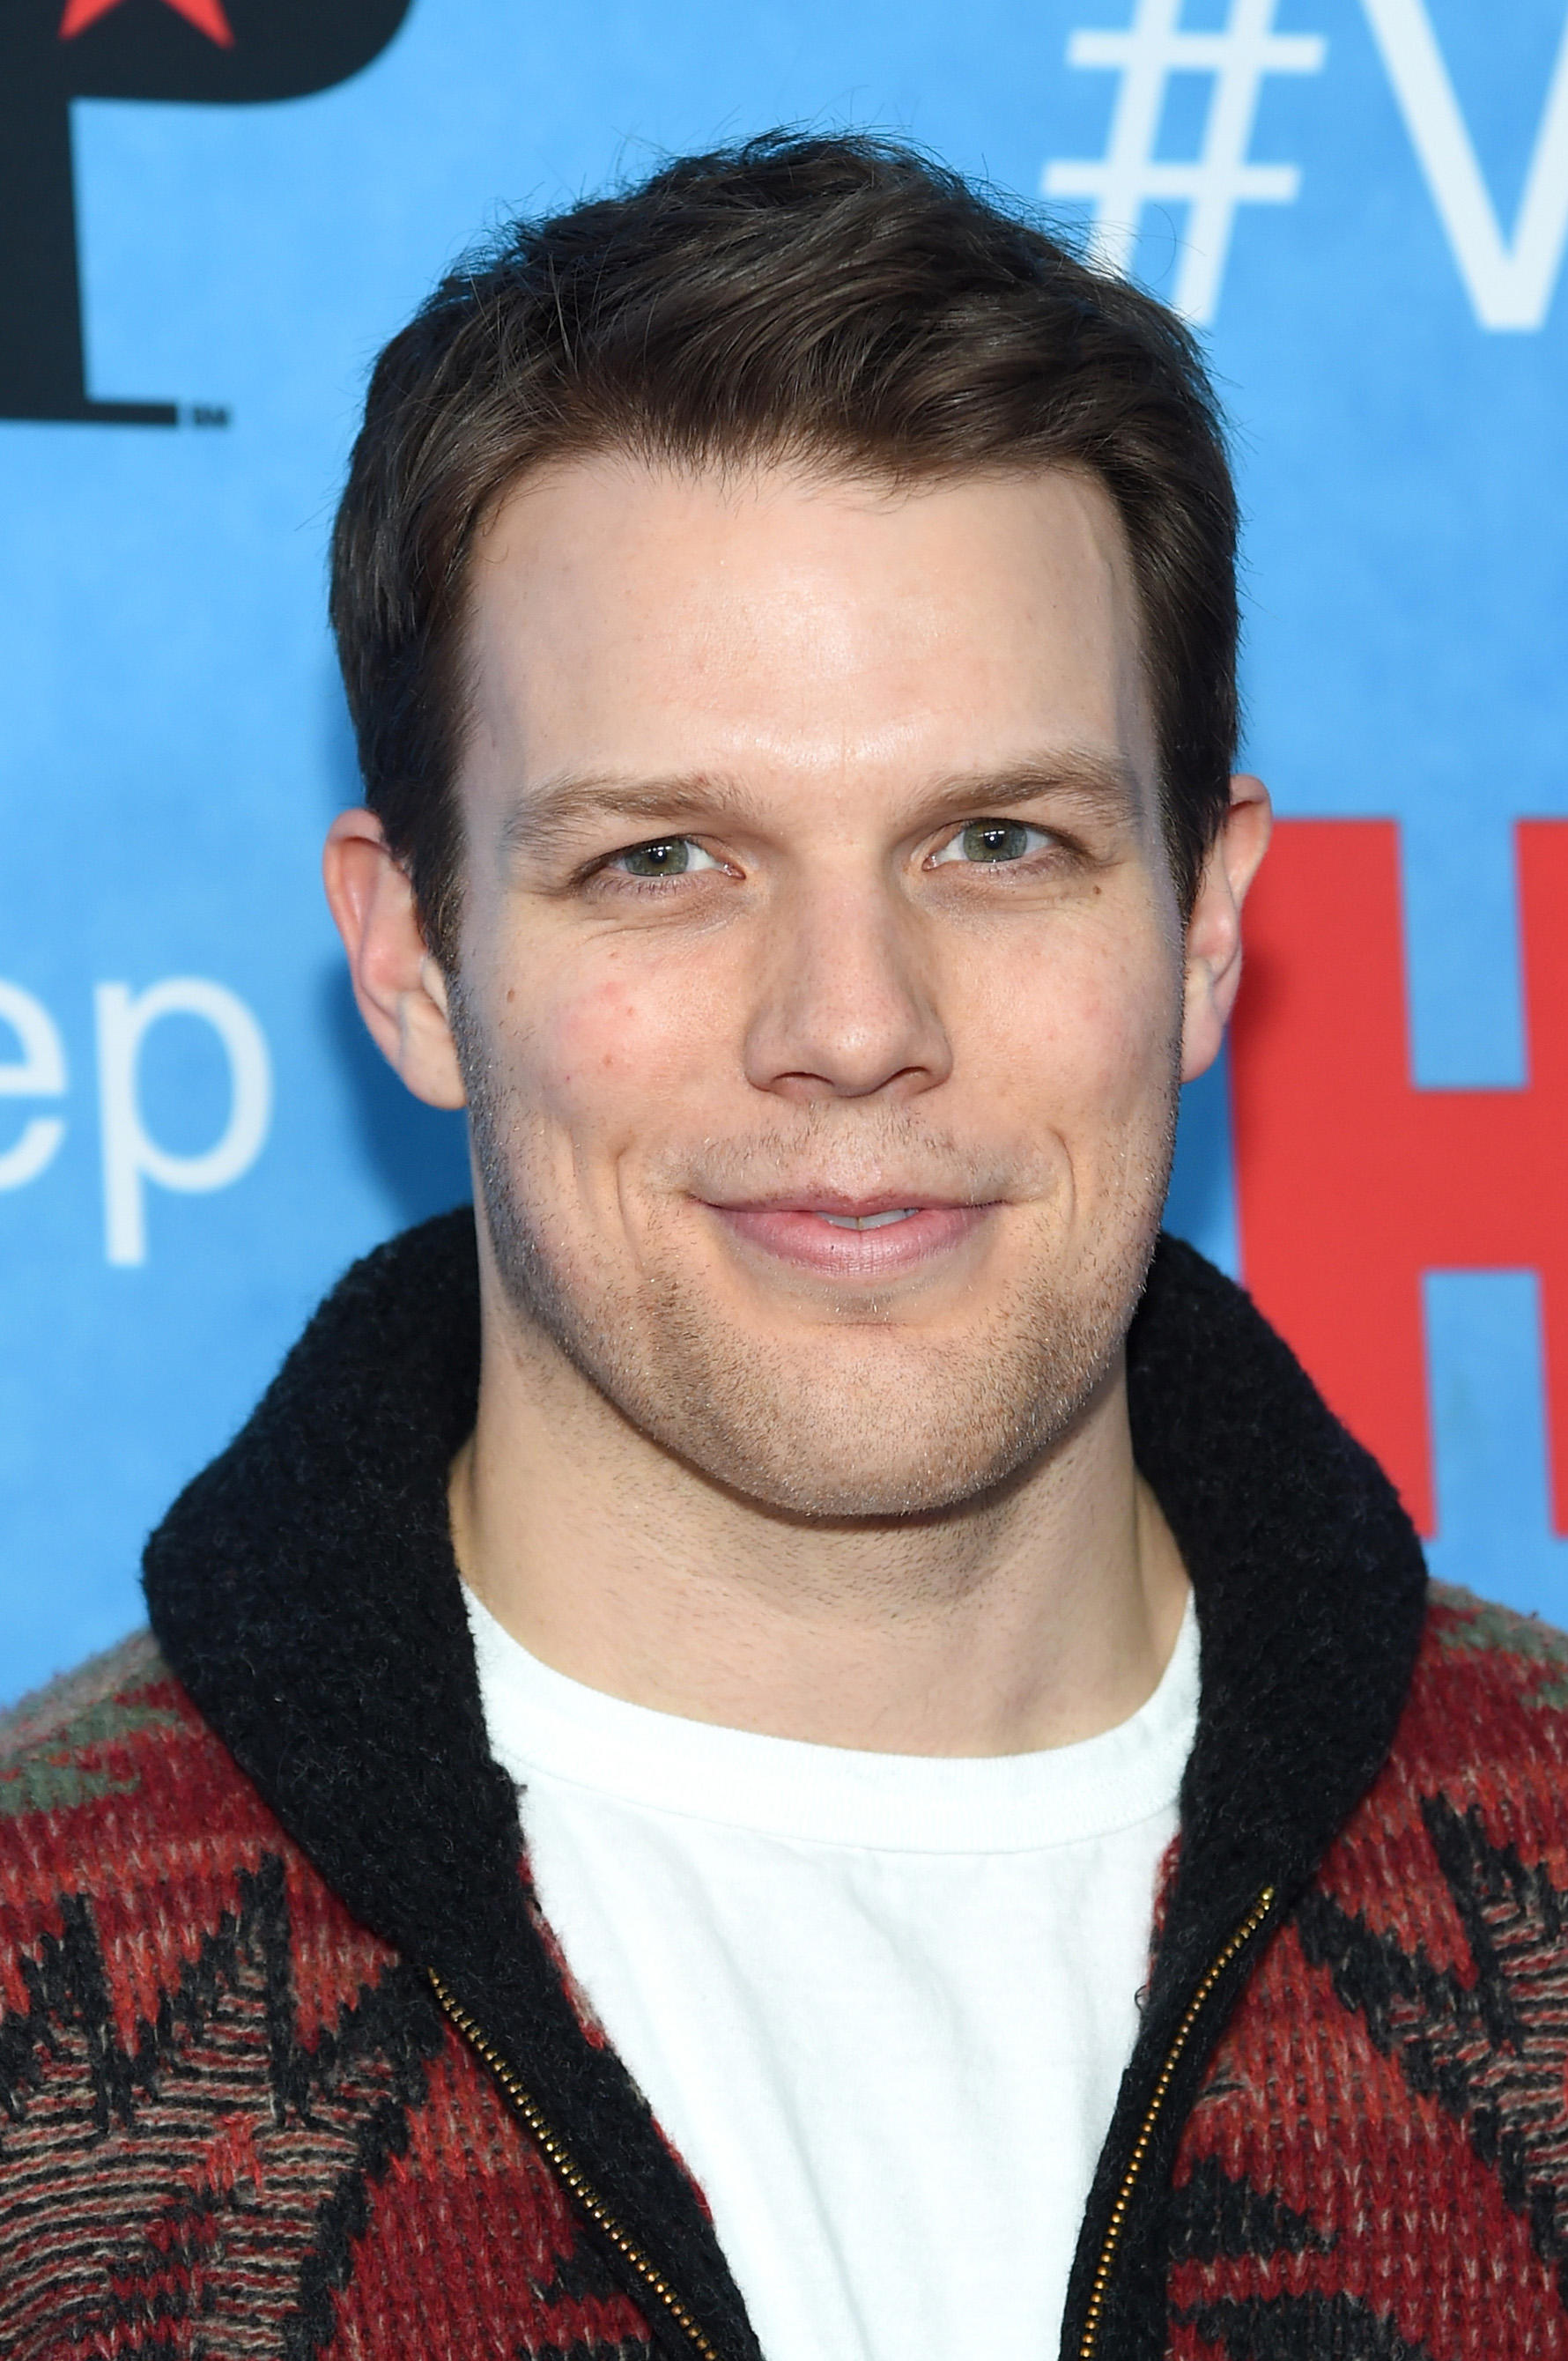 Jake Lacy attends the 'VEEP' Season 4 New York Screening at the SVA Theater.